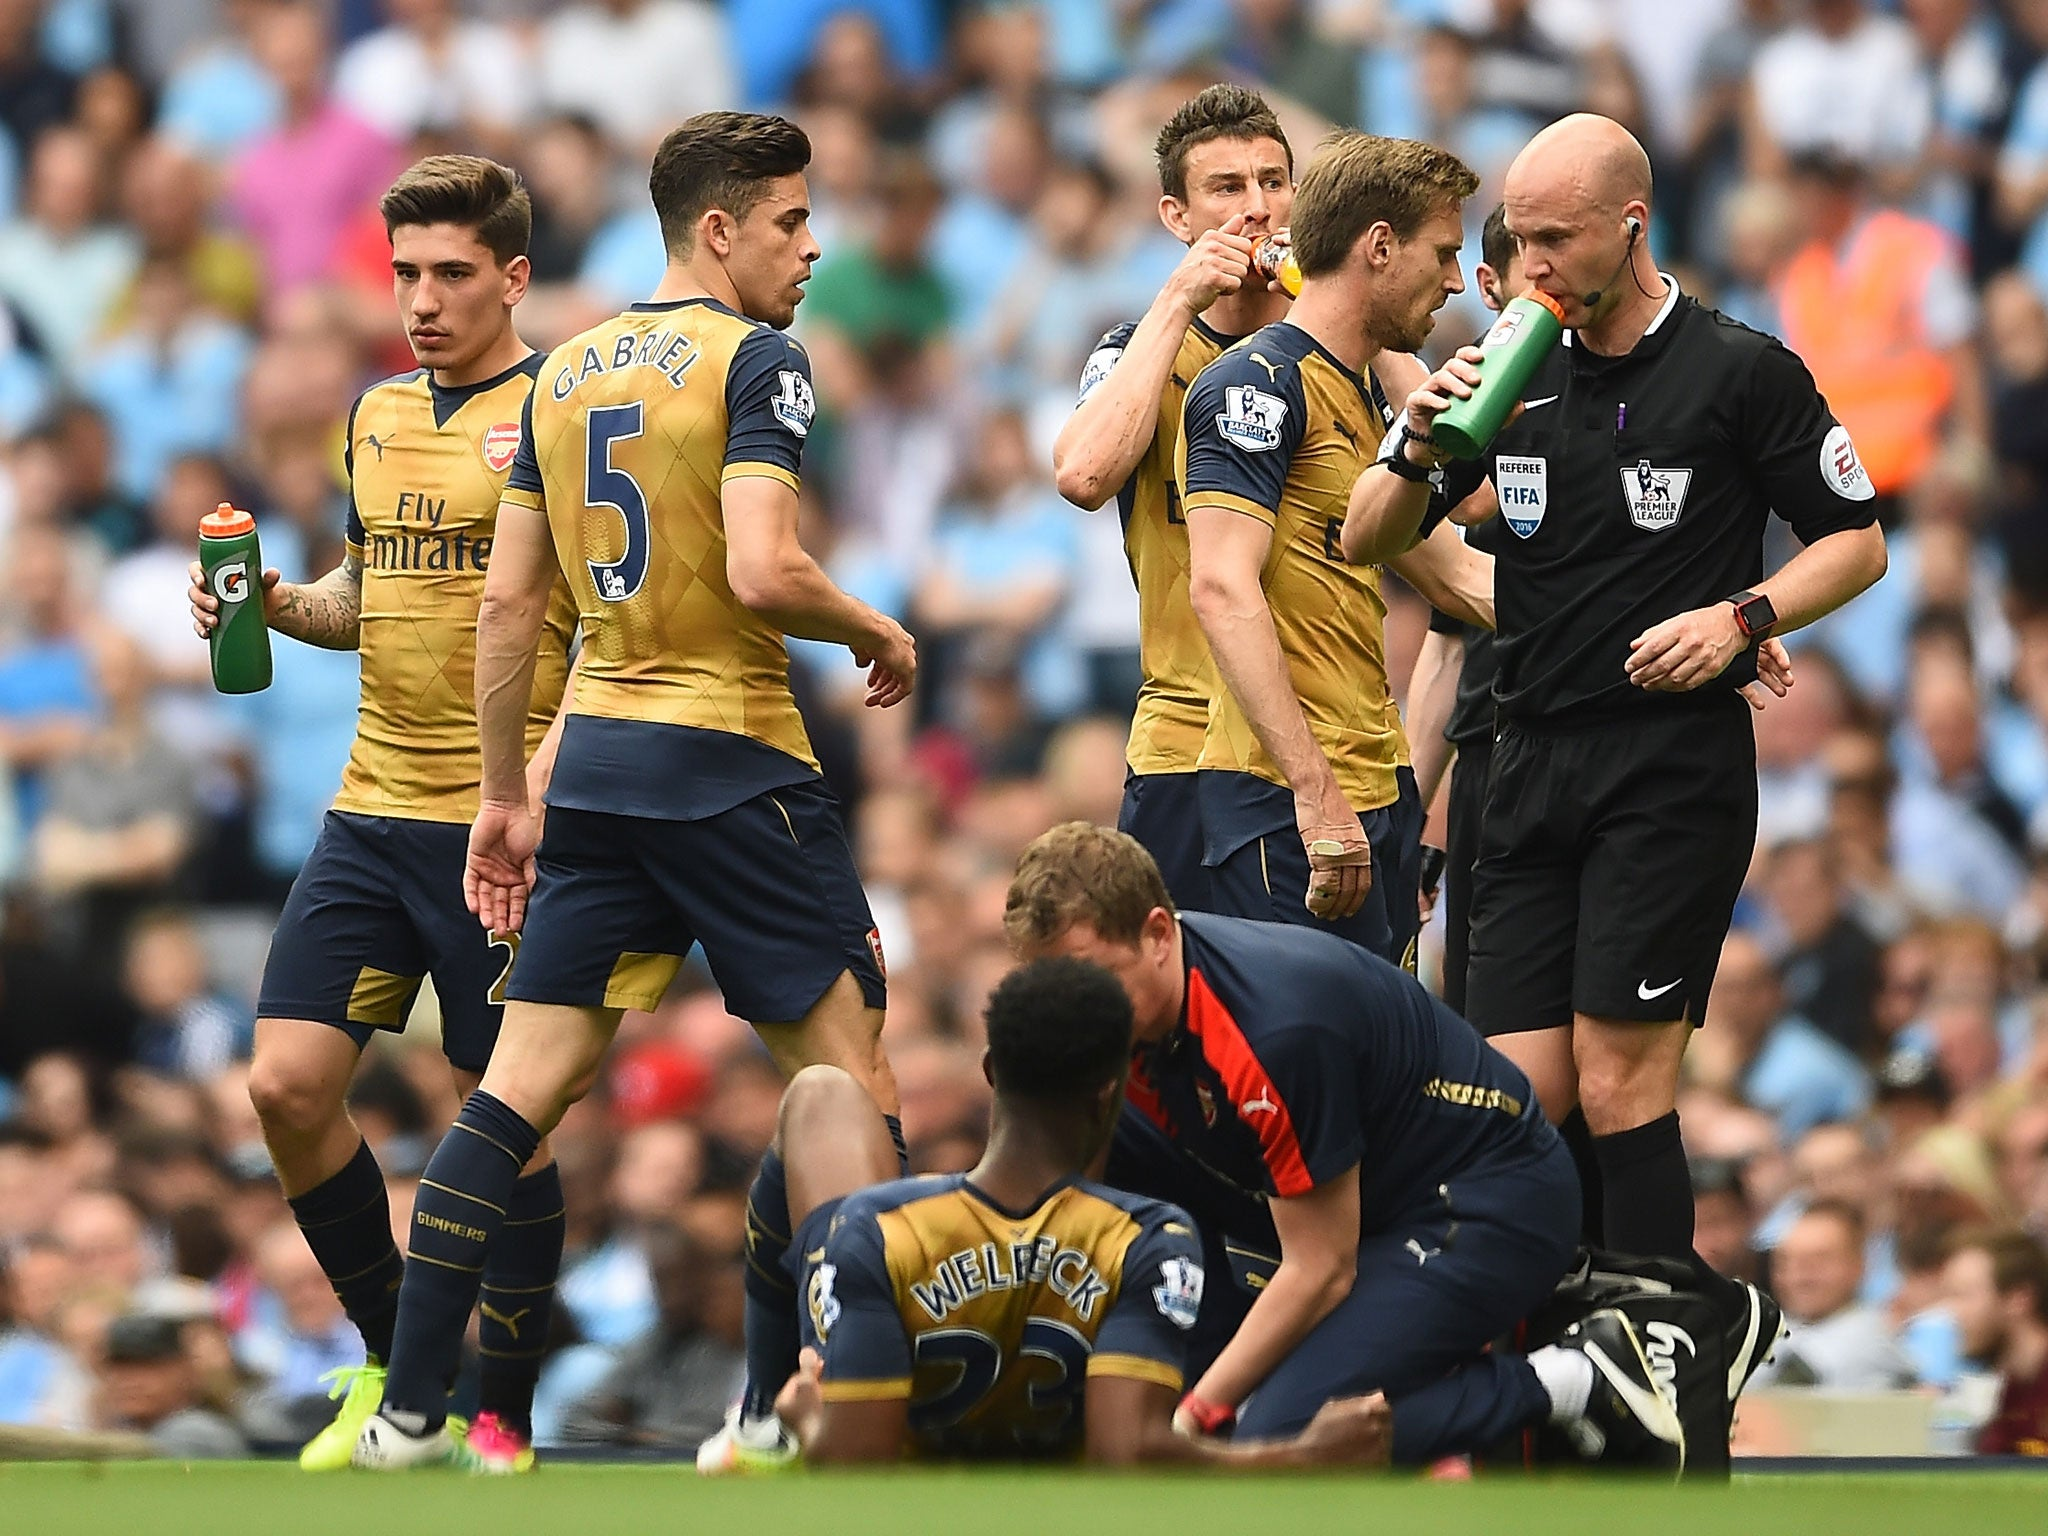 Danny Welbeck injury: Arsenal striker could miss Euro 2016 after suffering knee injury against Manchester City